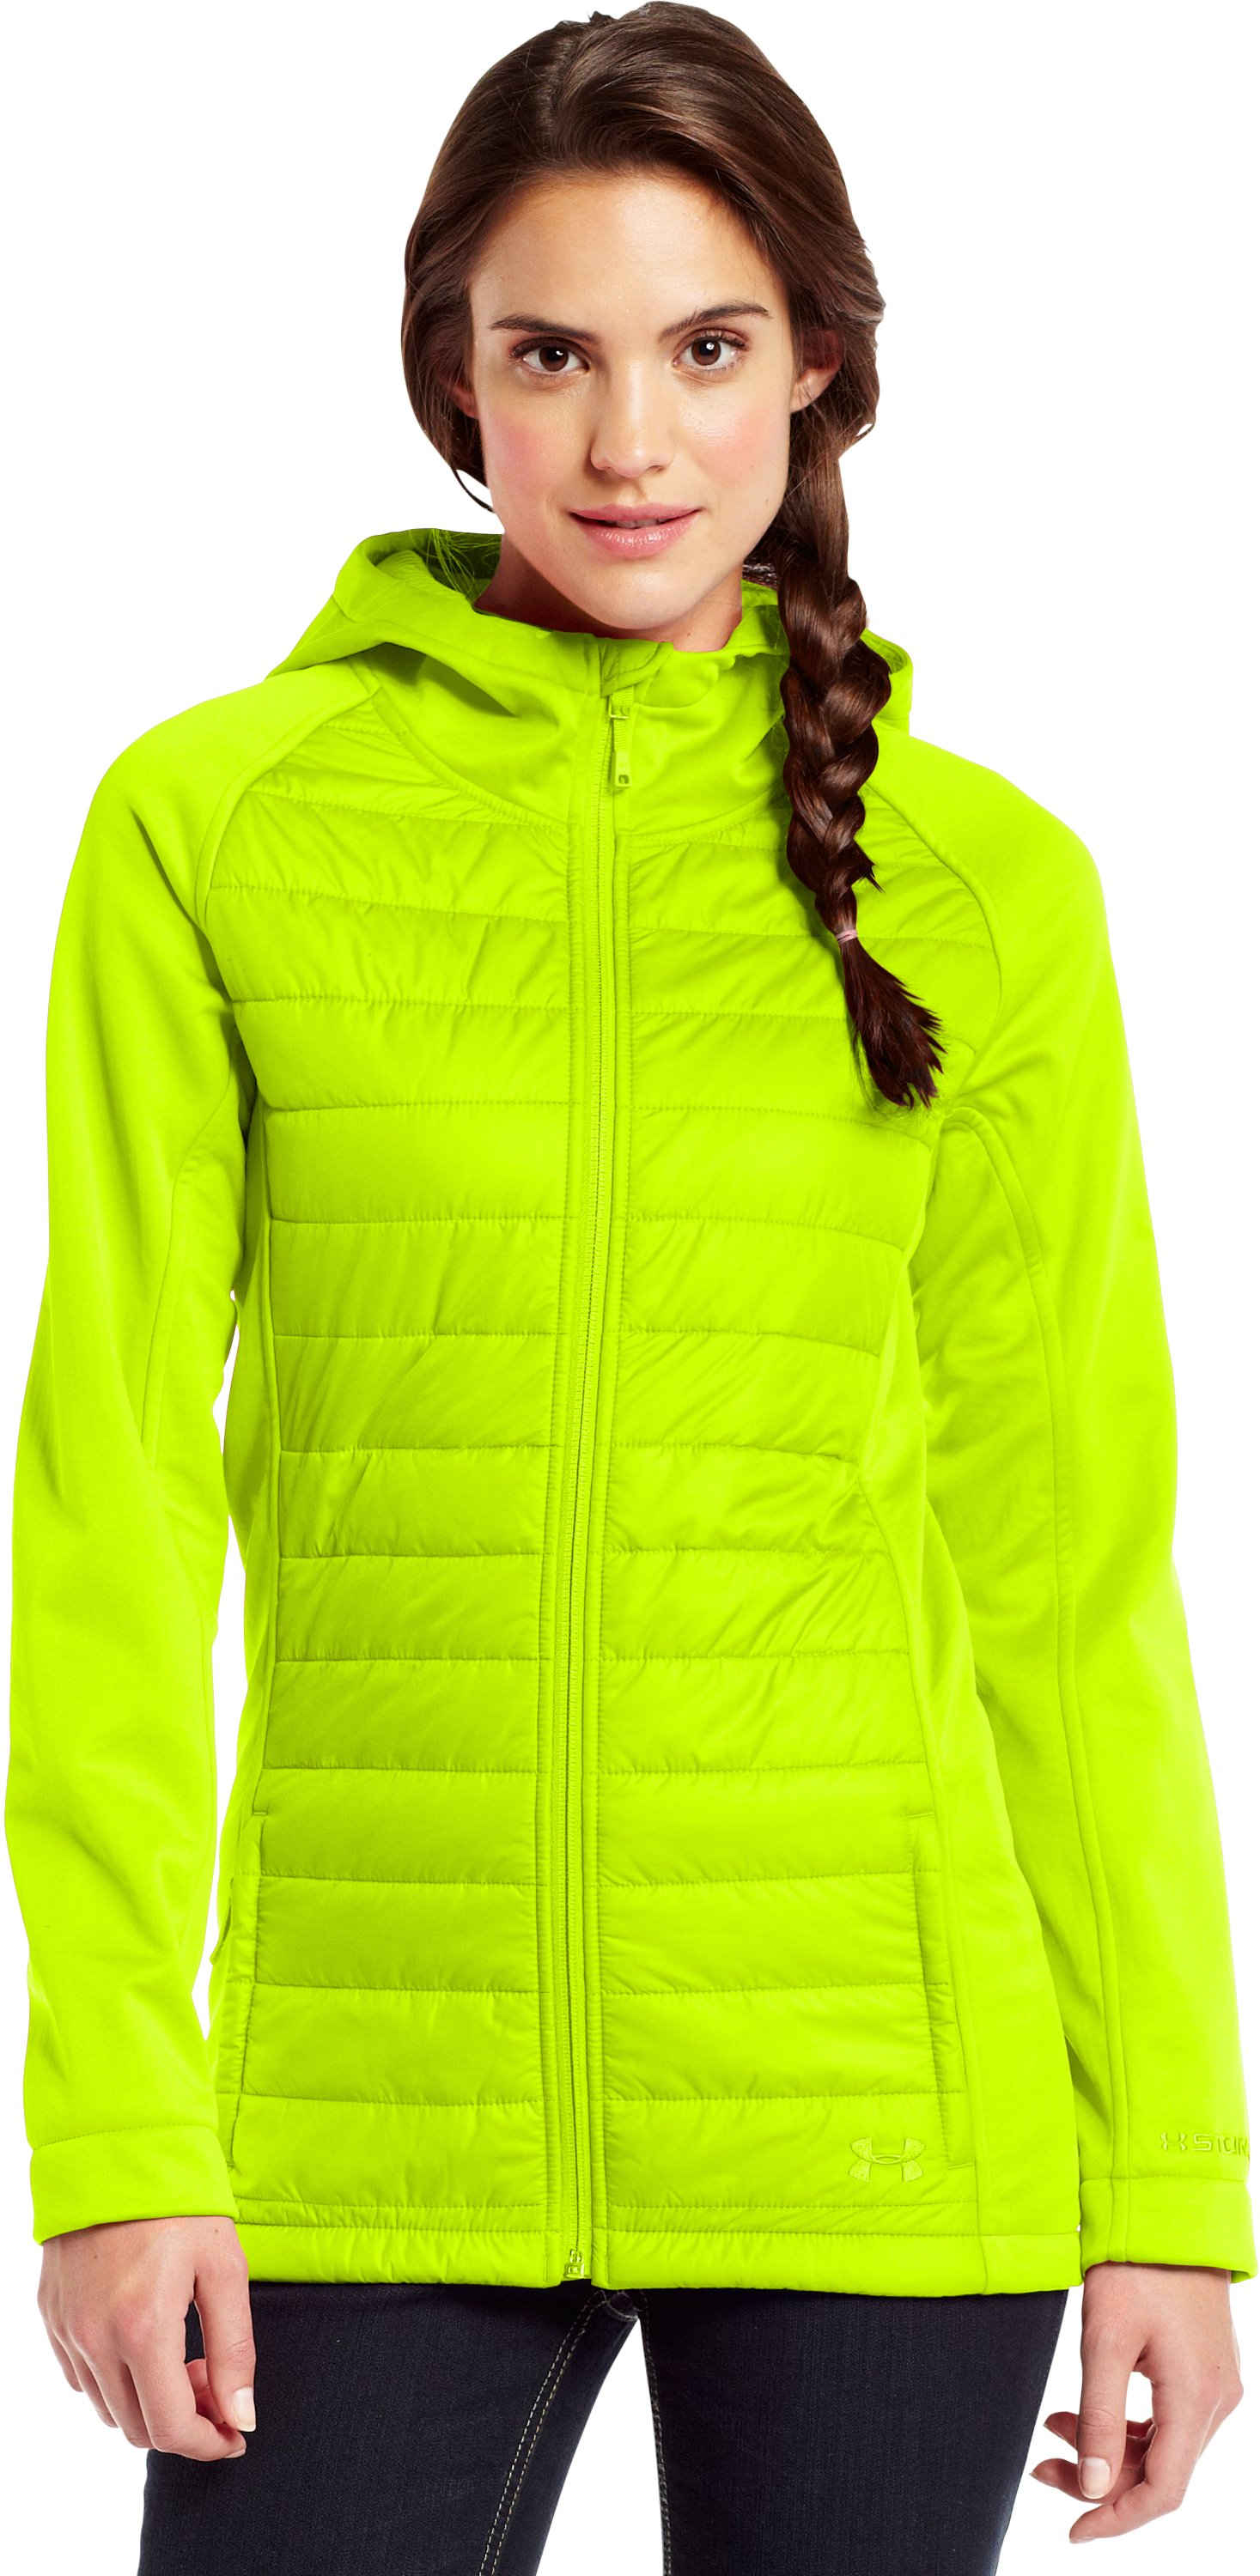 Women's ColdGear® Infrared Werewolf Jacket, High-Vis Yellow, Front